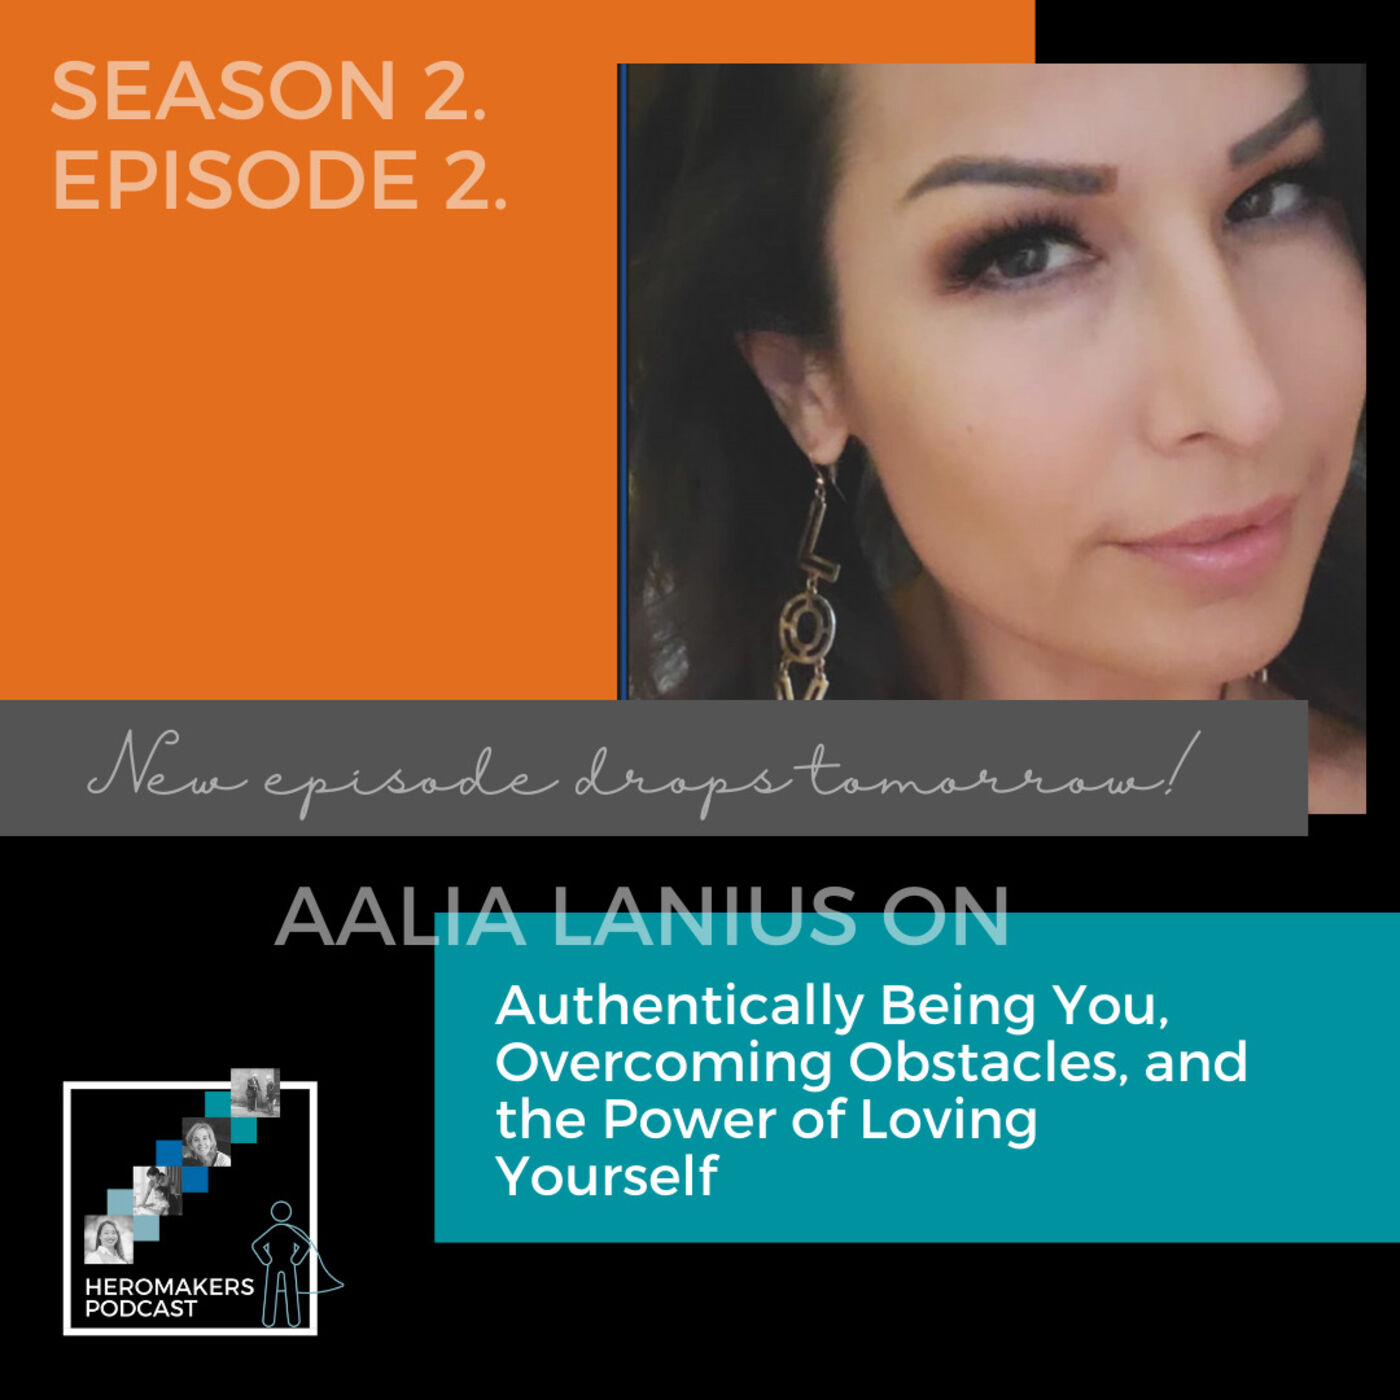 Aalia Lanius on Authentically Being You, Overcoming Obstacles, and the Power of Loving Yourself